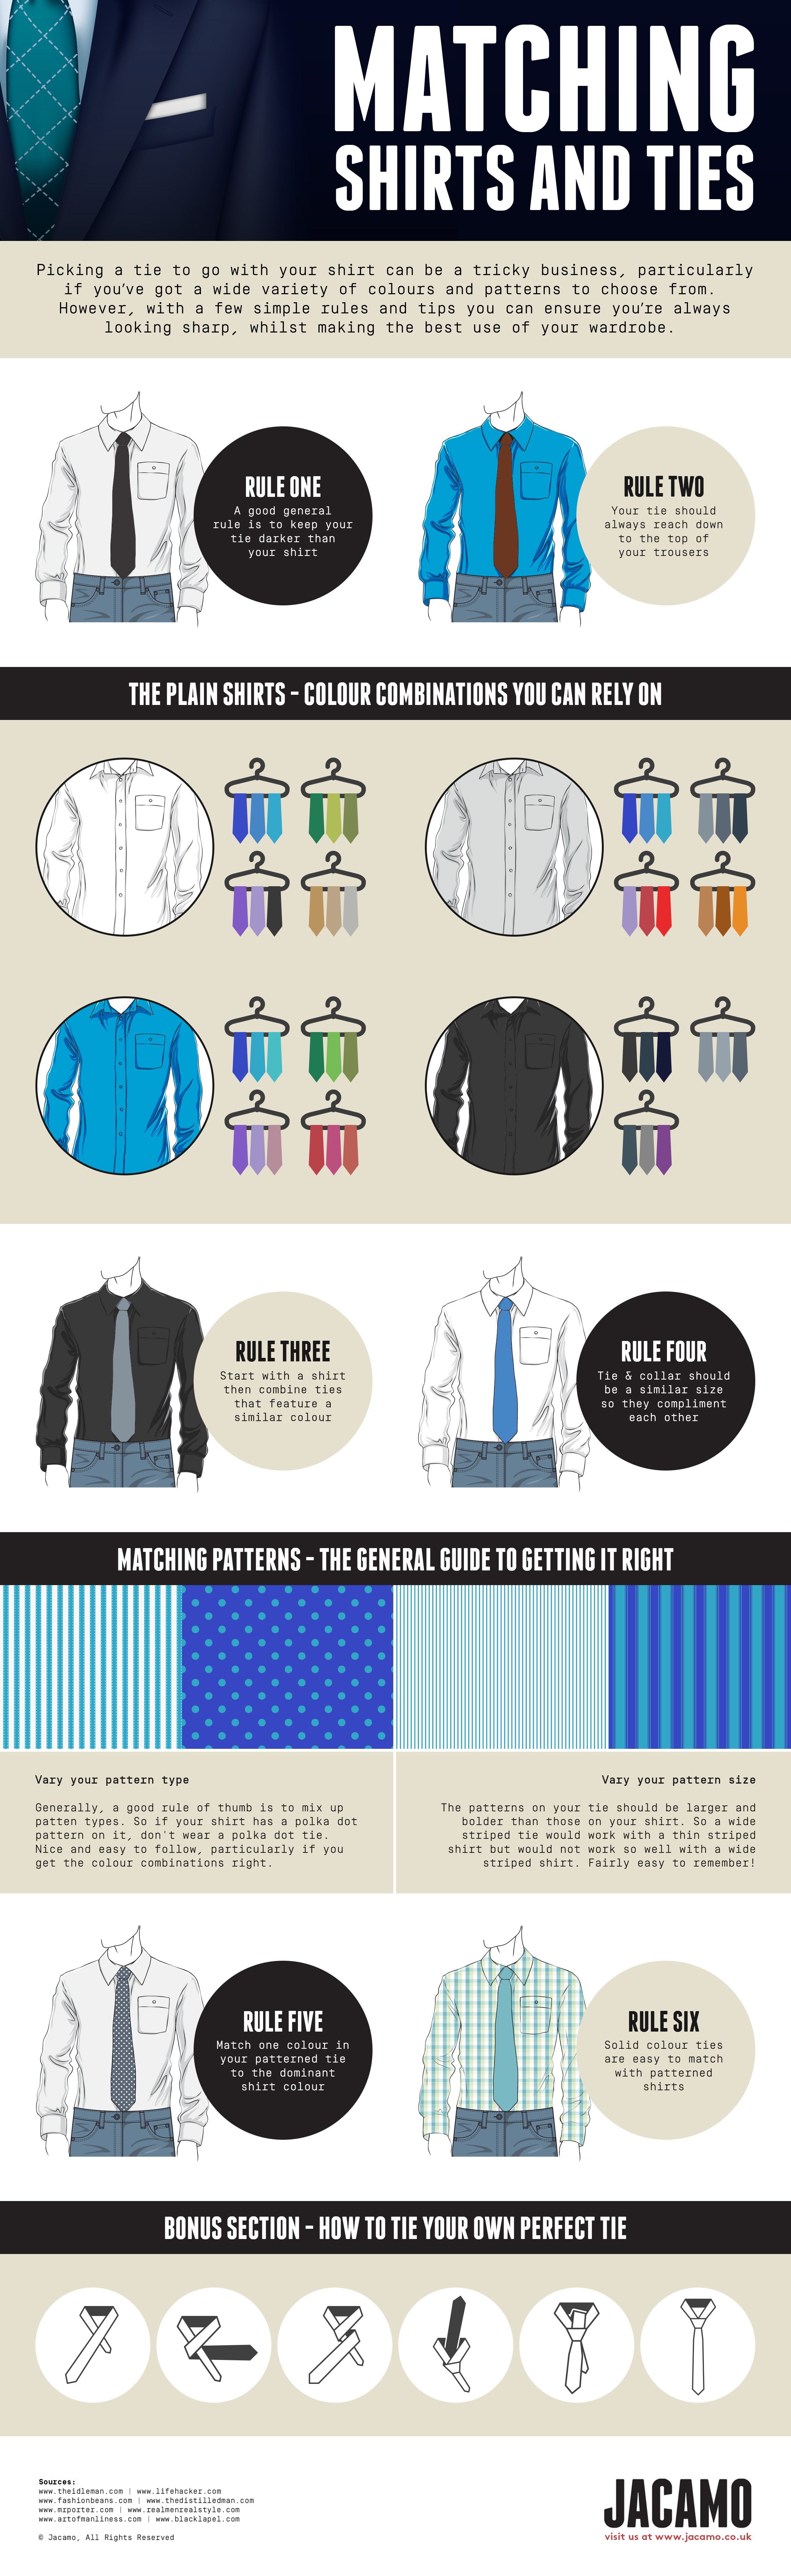 how to match shirt and ties